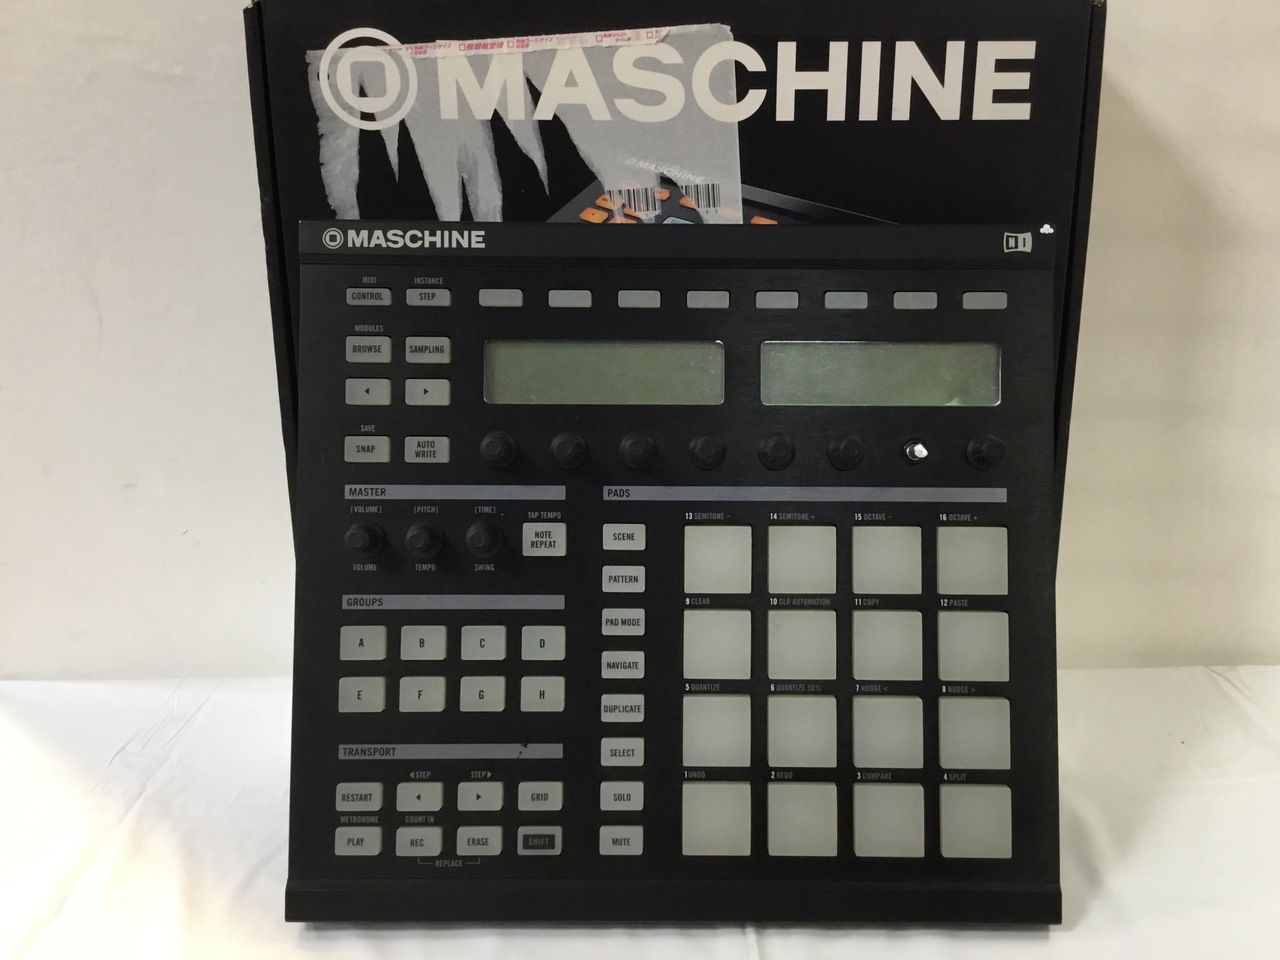 NATIVE INSTRUMENTS MASCHINE (software not included)